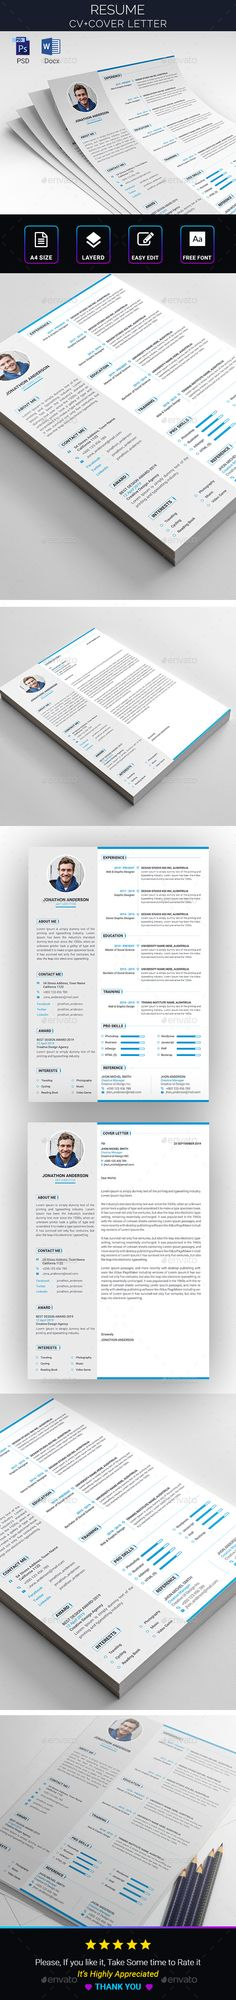 Resume A4 Template PSD, DOCX